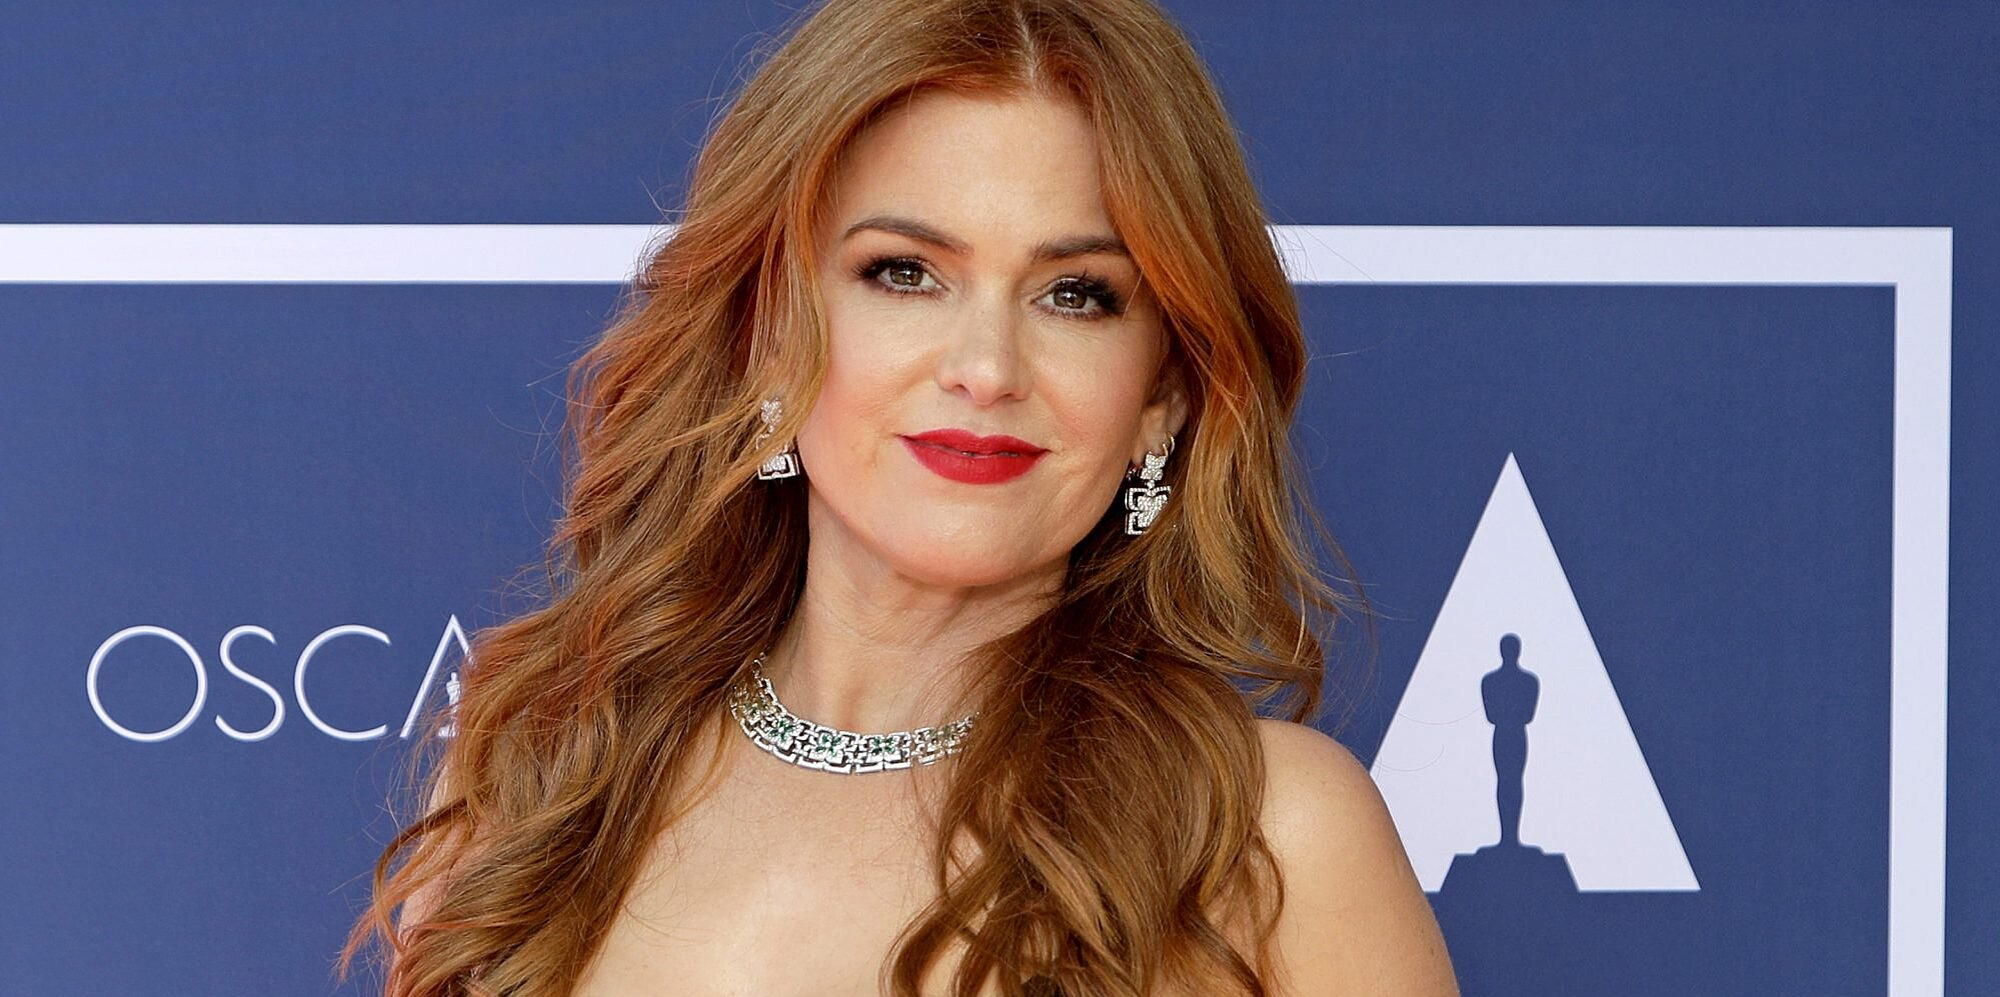 Isla Fisher Has a Very Understandable Reason for Keeping Her Kids' Lives Private